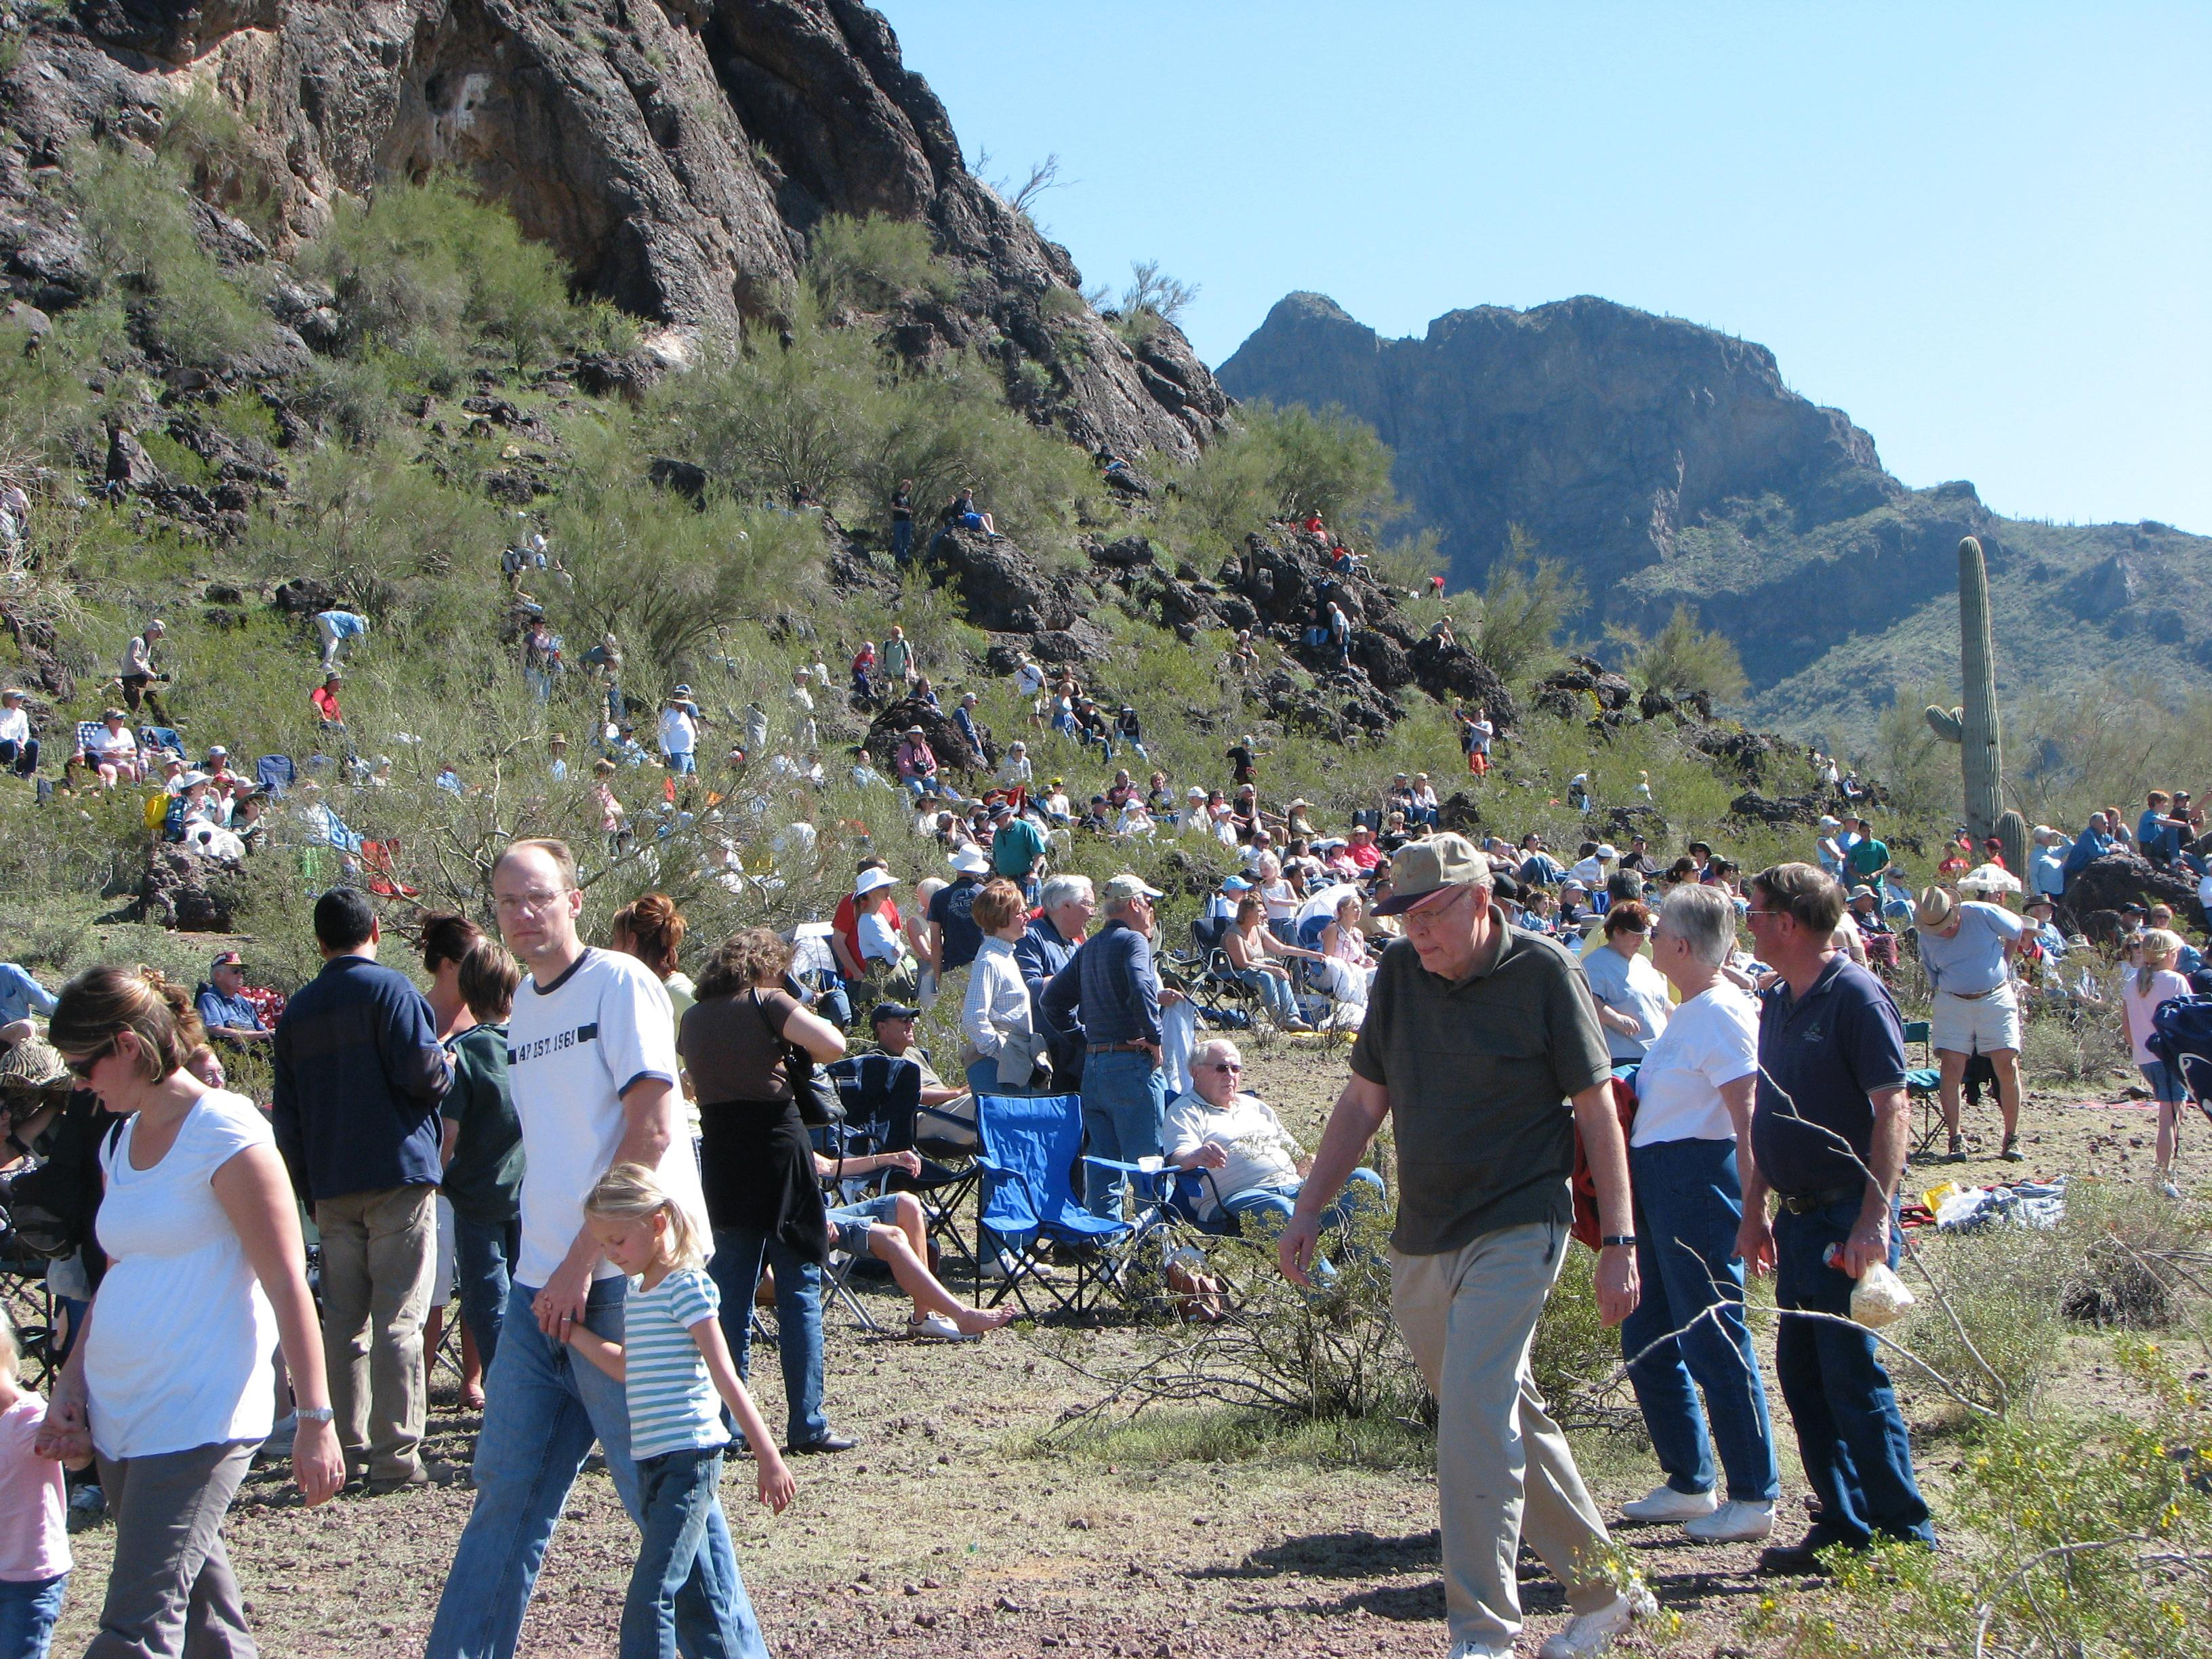 Spectators attend Picacho Re-Enactment